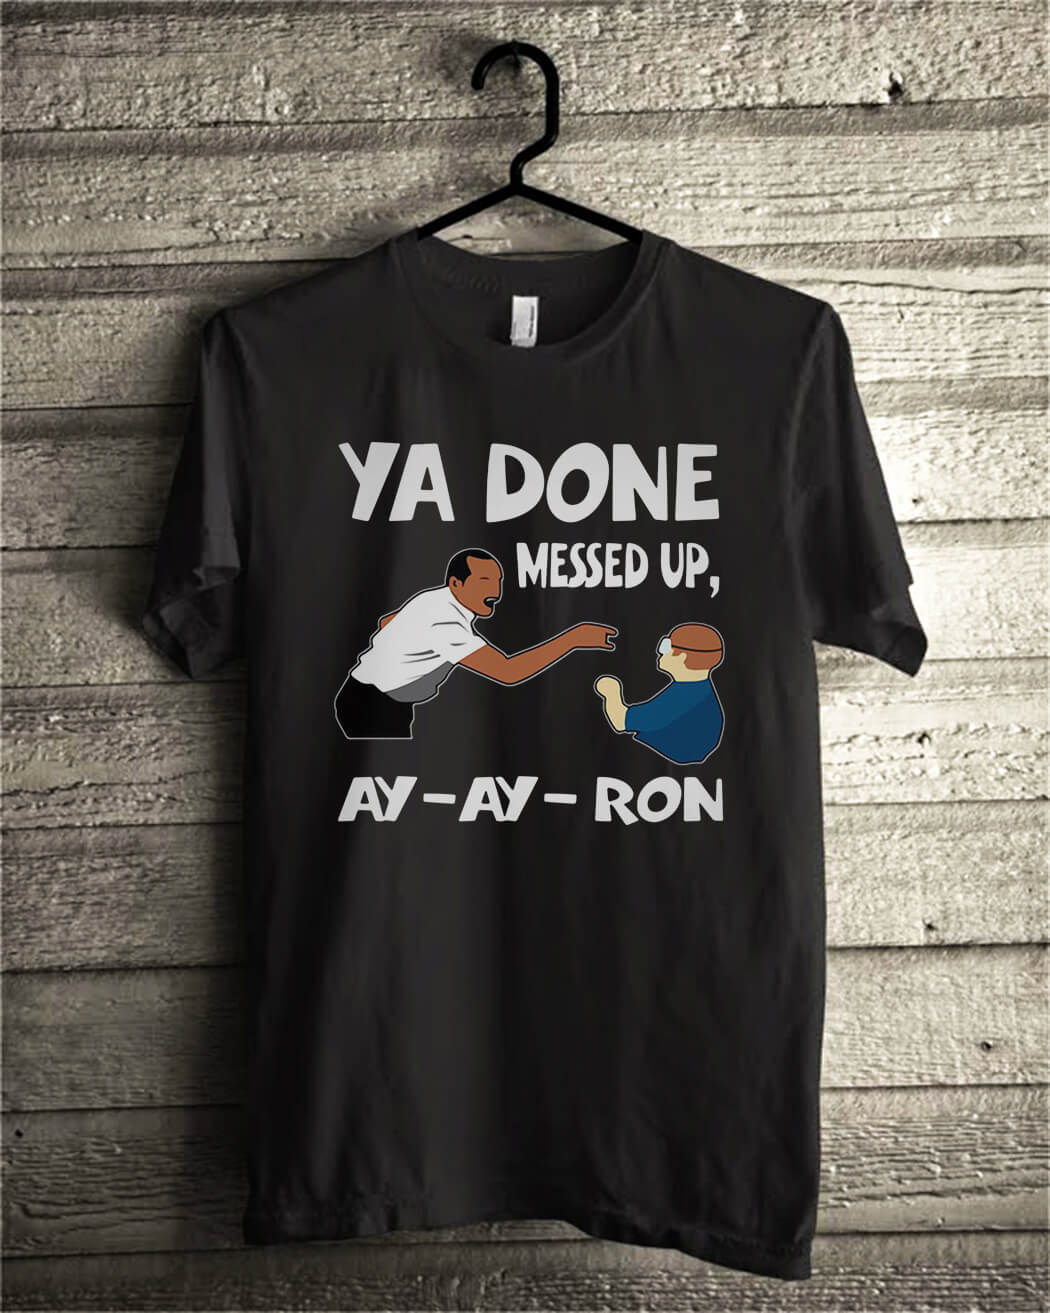 Ya done messed up ay ay ron shirt